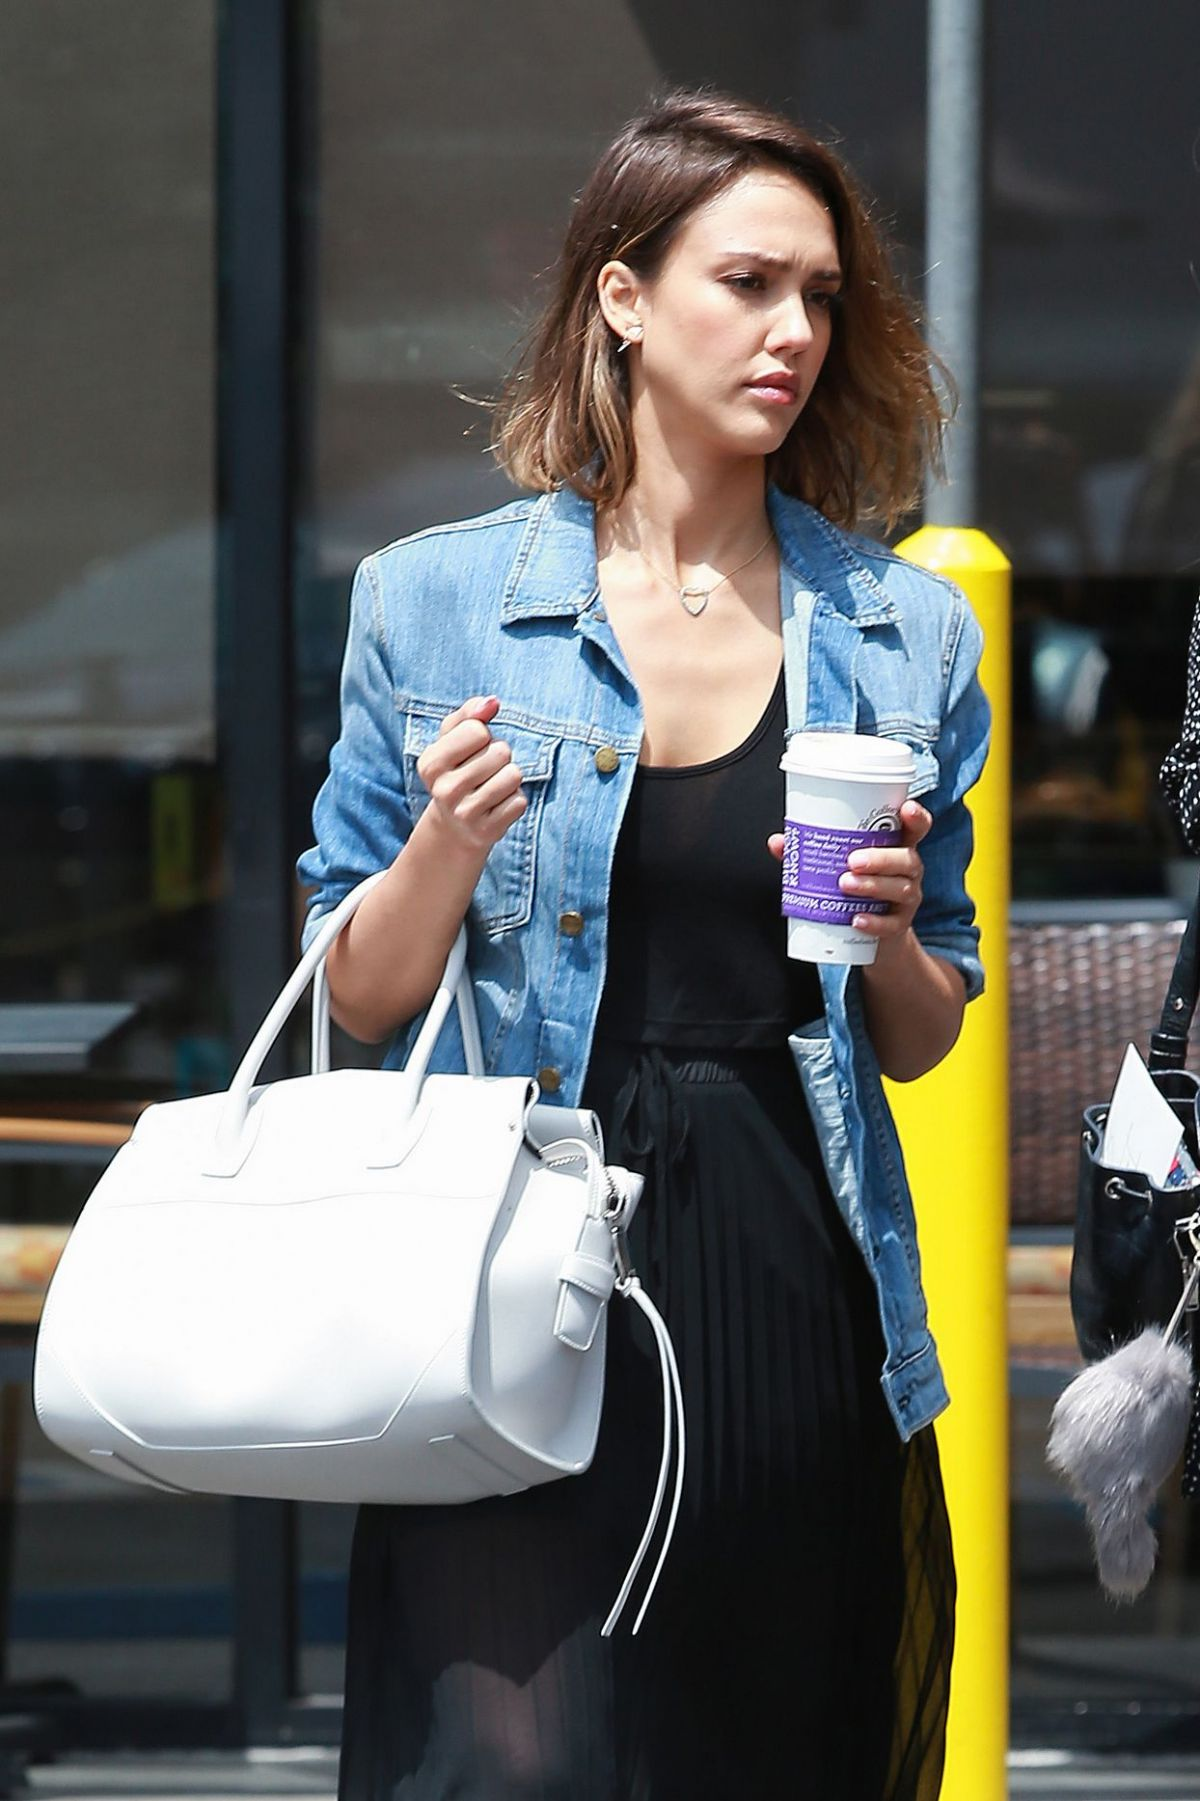 JESSICA ALBA Out and About in Los Angeles 06/14/2015